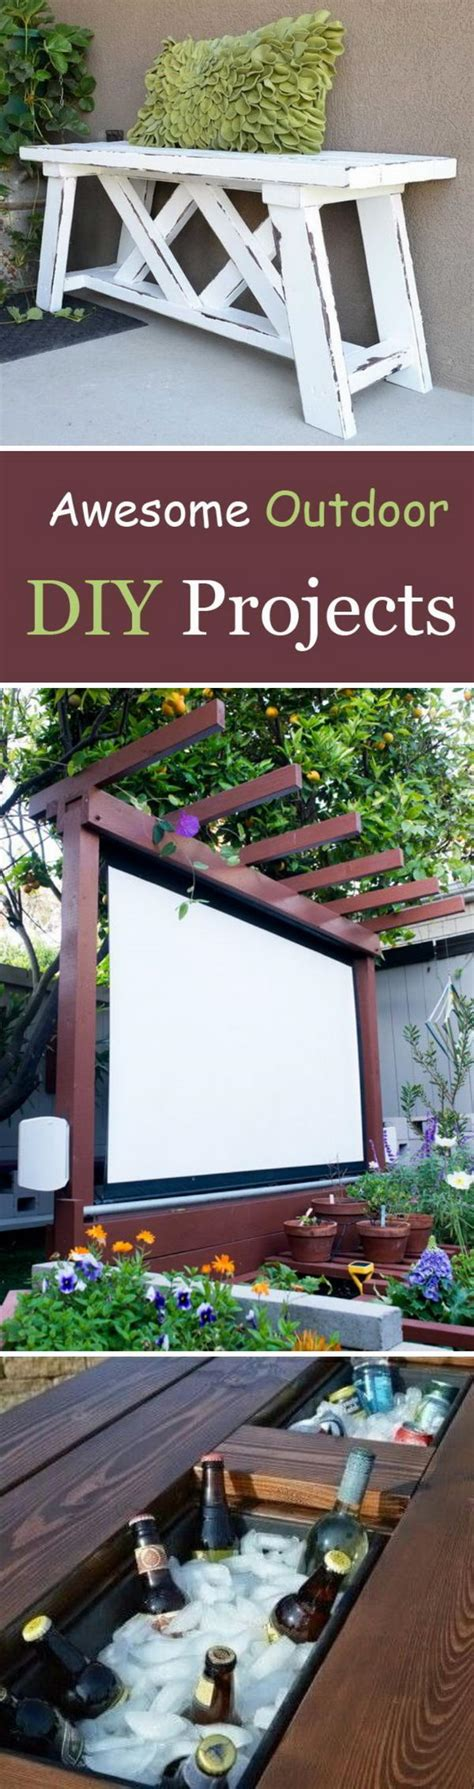 epic diy projects 20 awesome outdoor diy projects